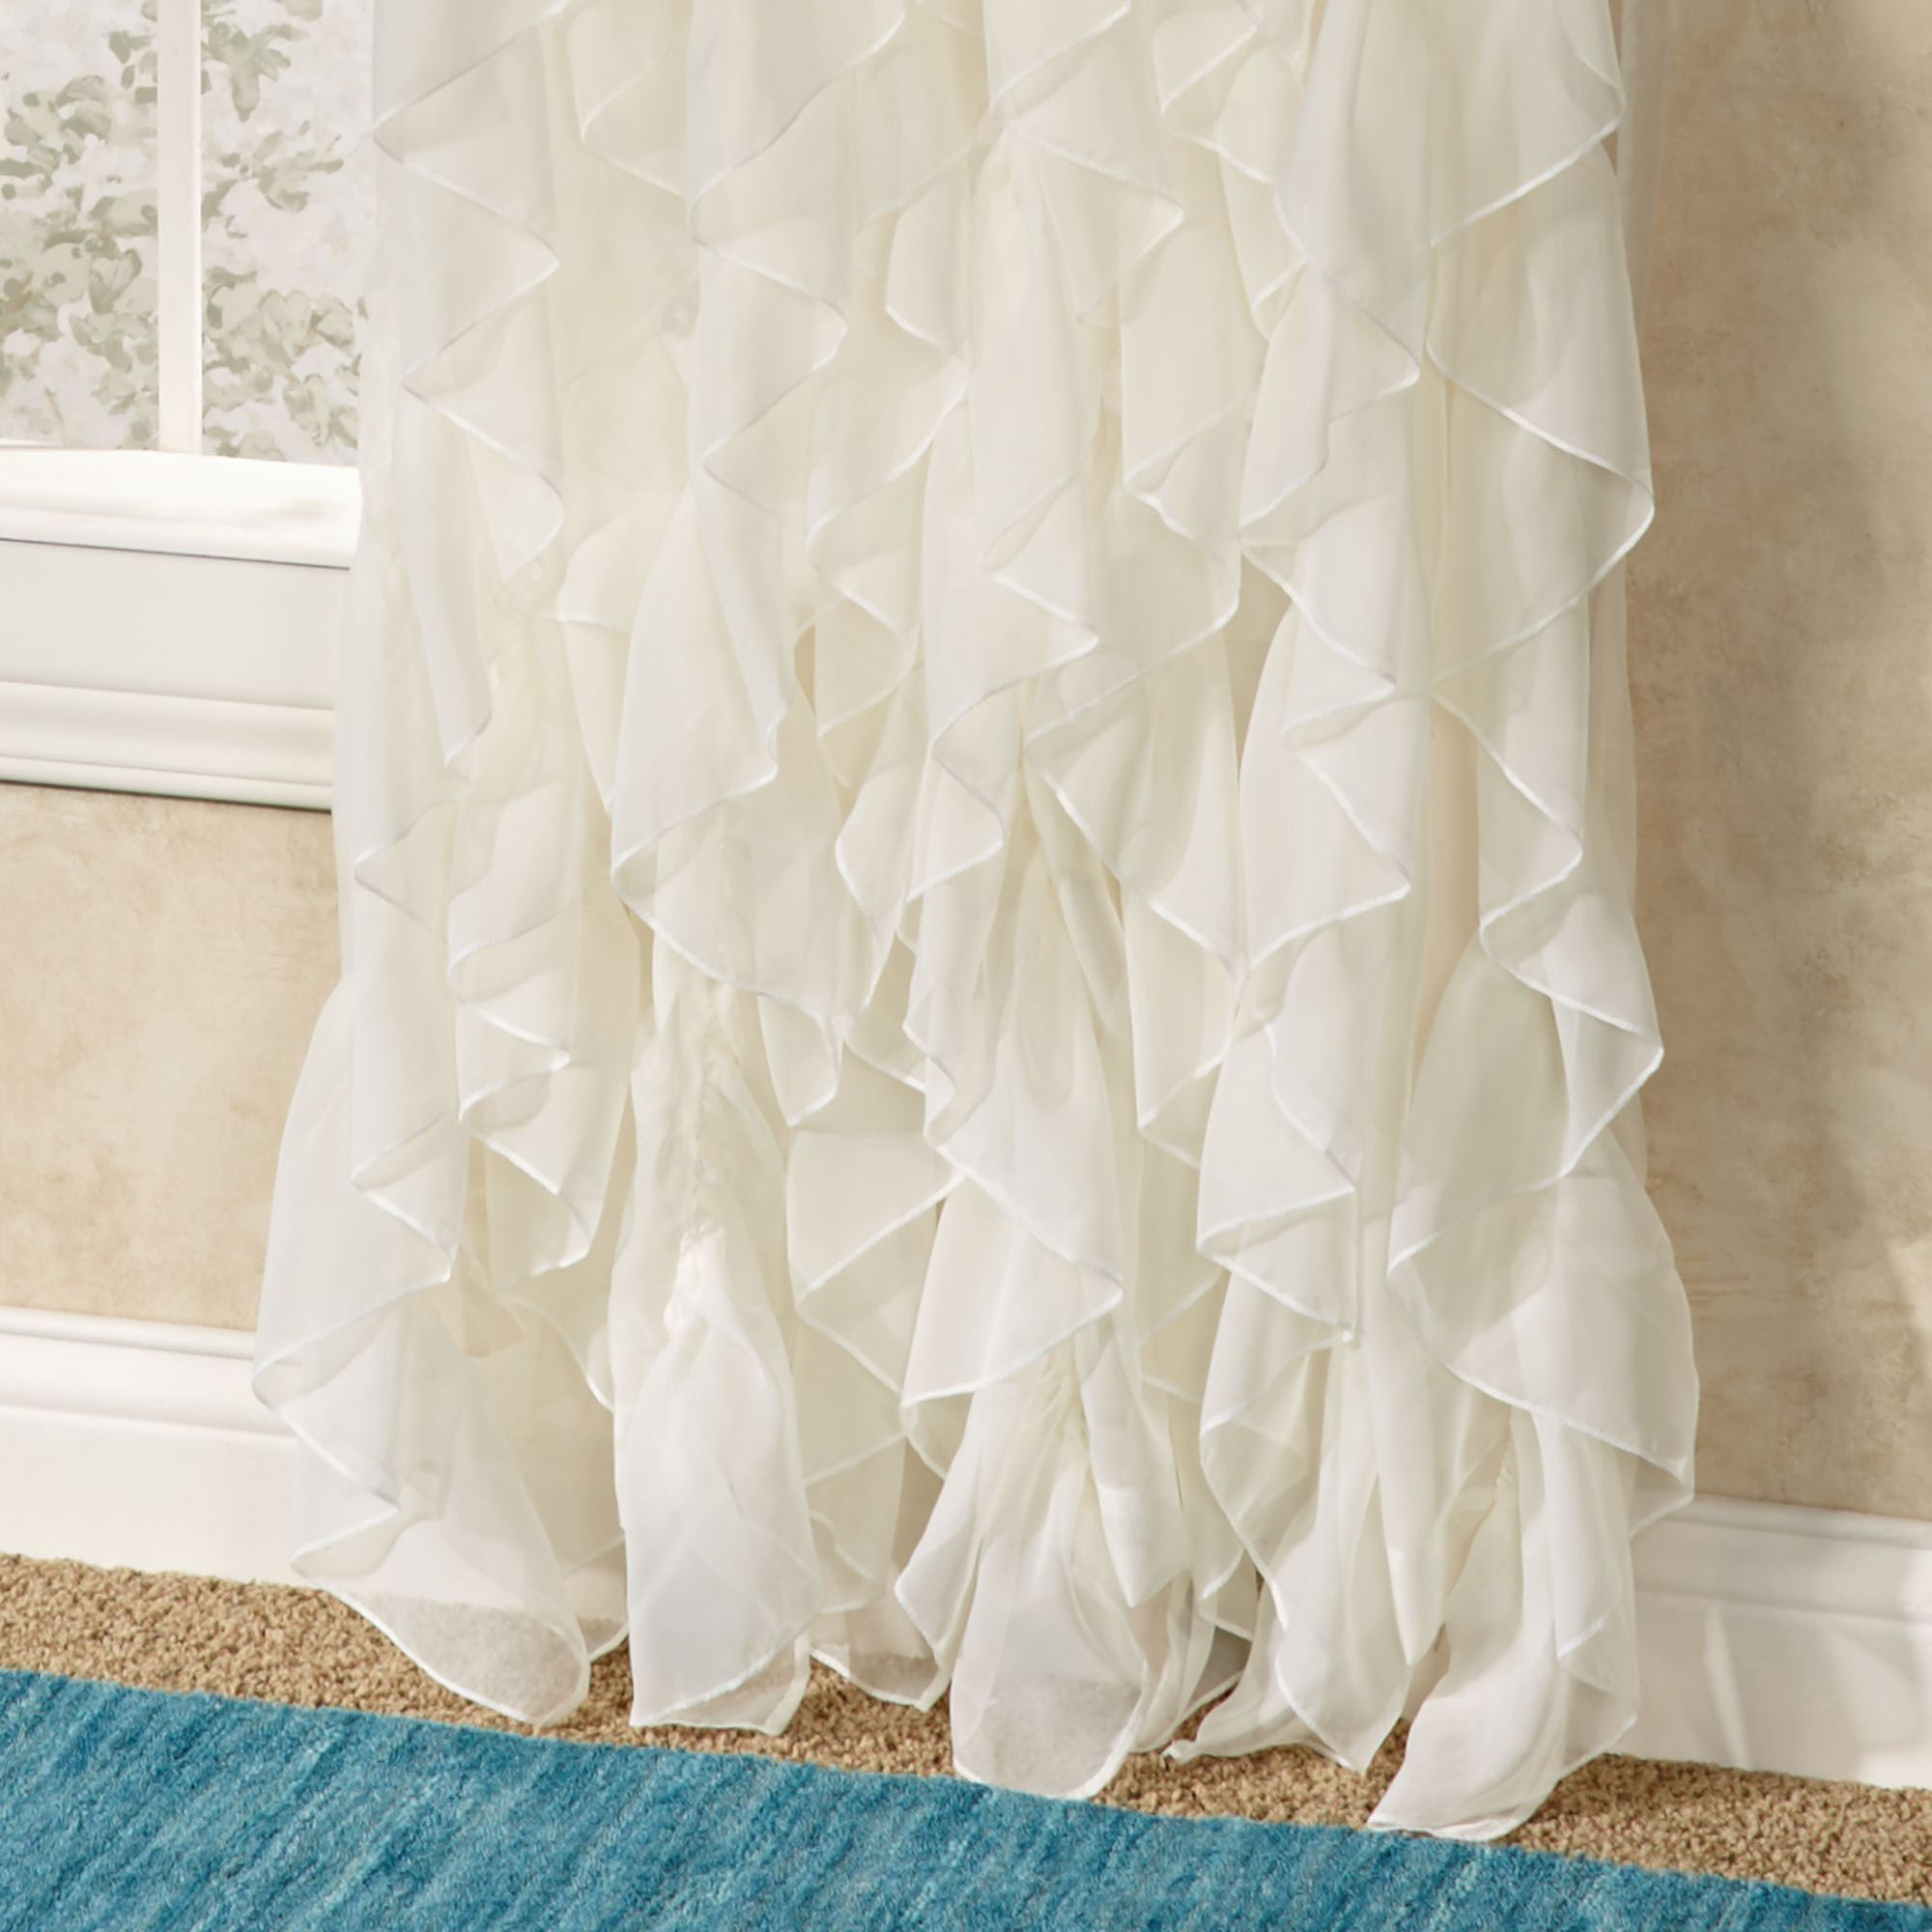 Sheer Voile Ruffled Tier Window Curtain Panels Inside Favorite Cascade Sheer Voile Ruffled Window Treatment (View 2 of 20)